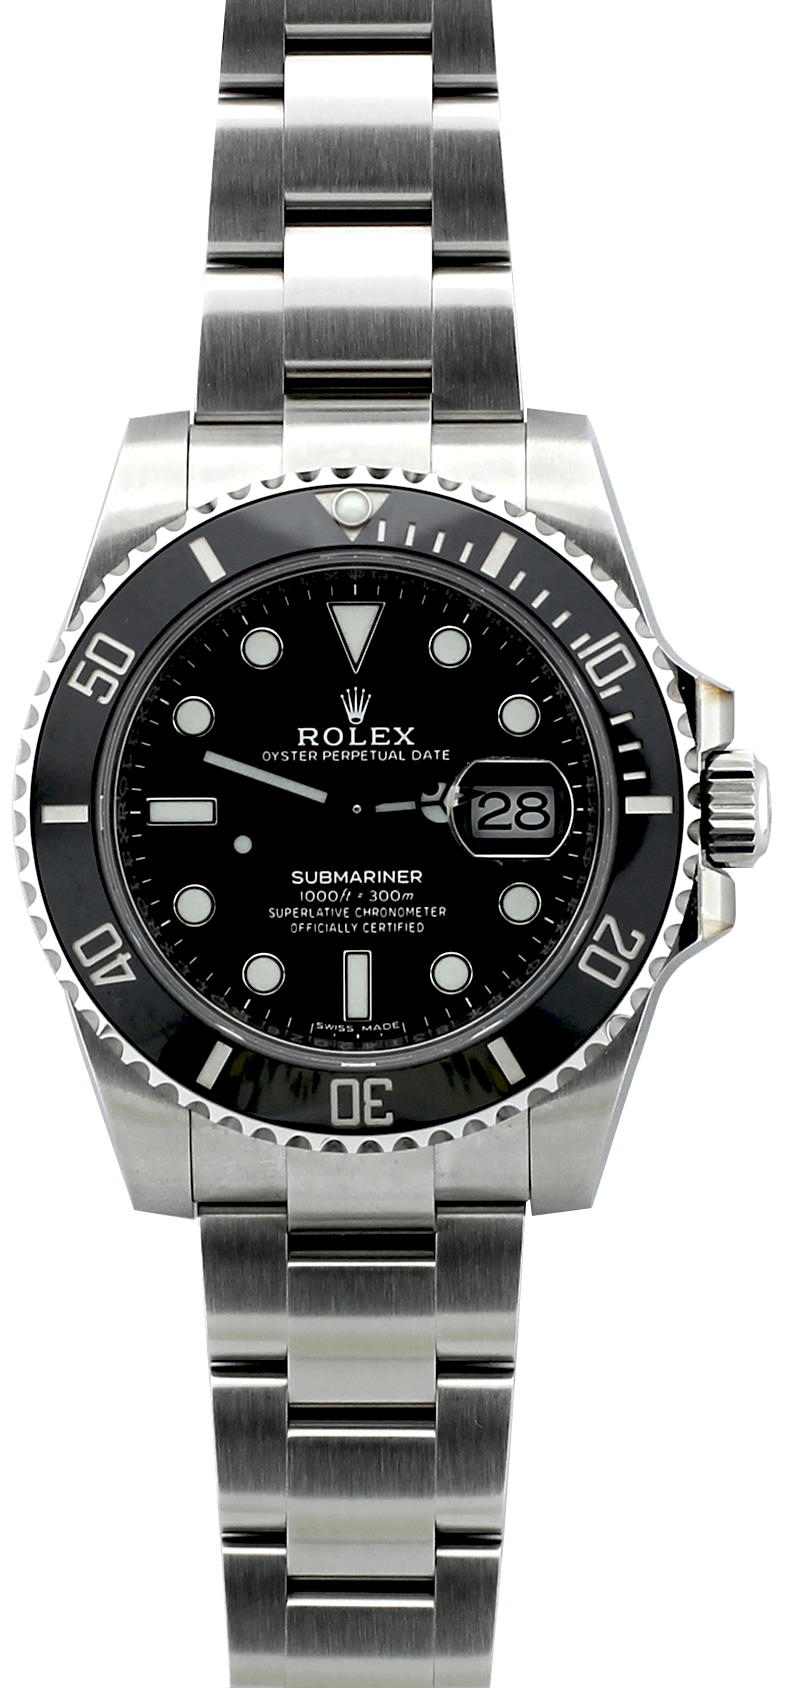 Unworn Rolex Steel Ceramic Submariner Date 116610 with Box & Card